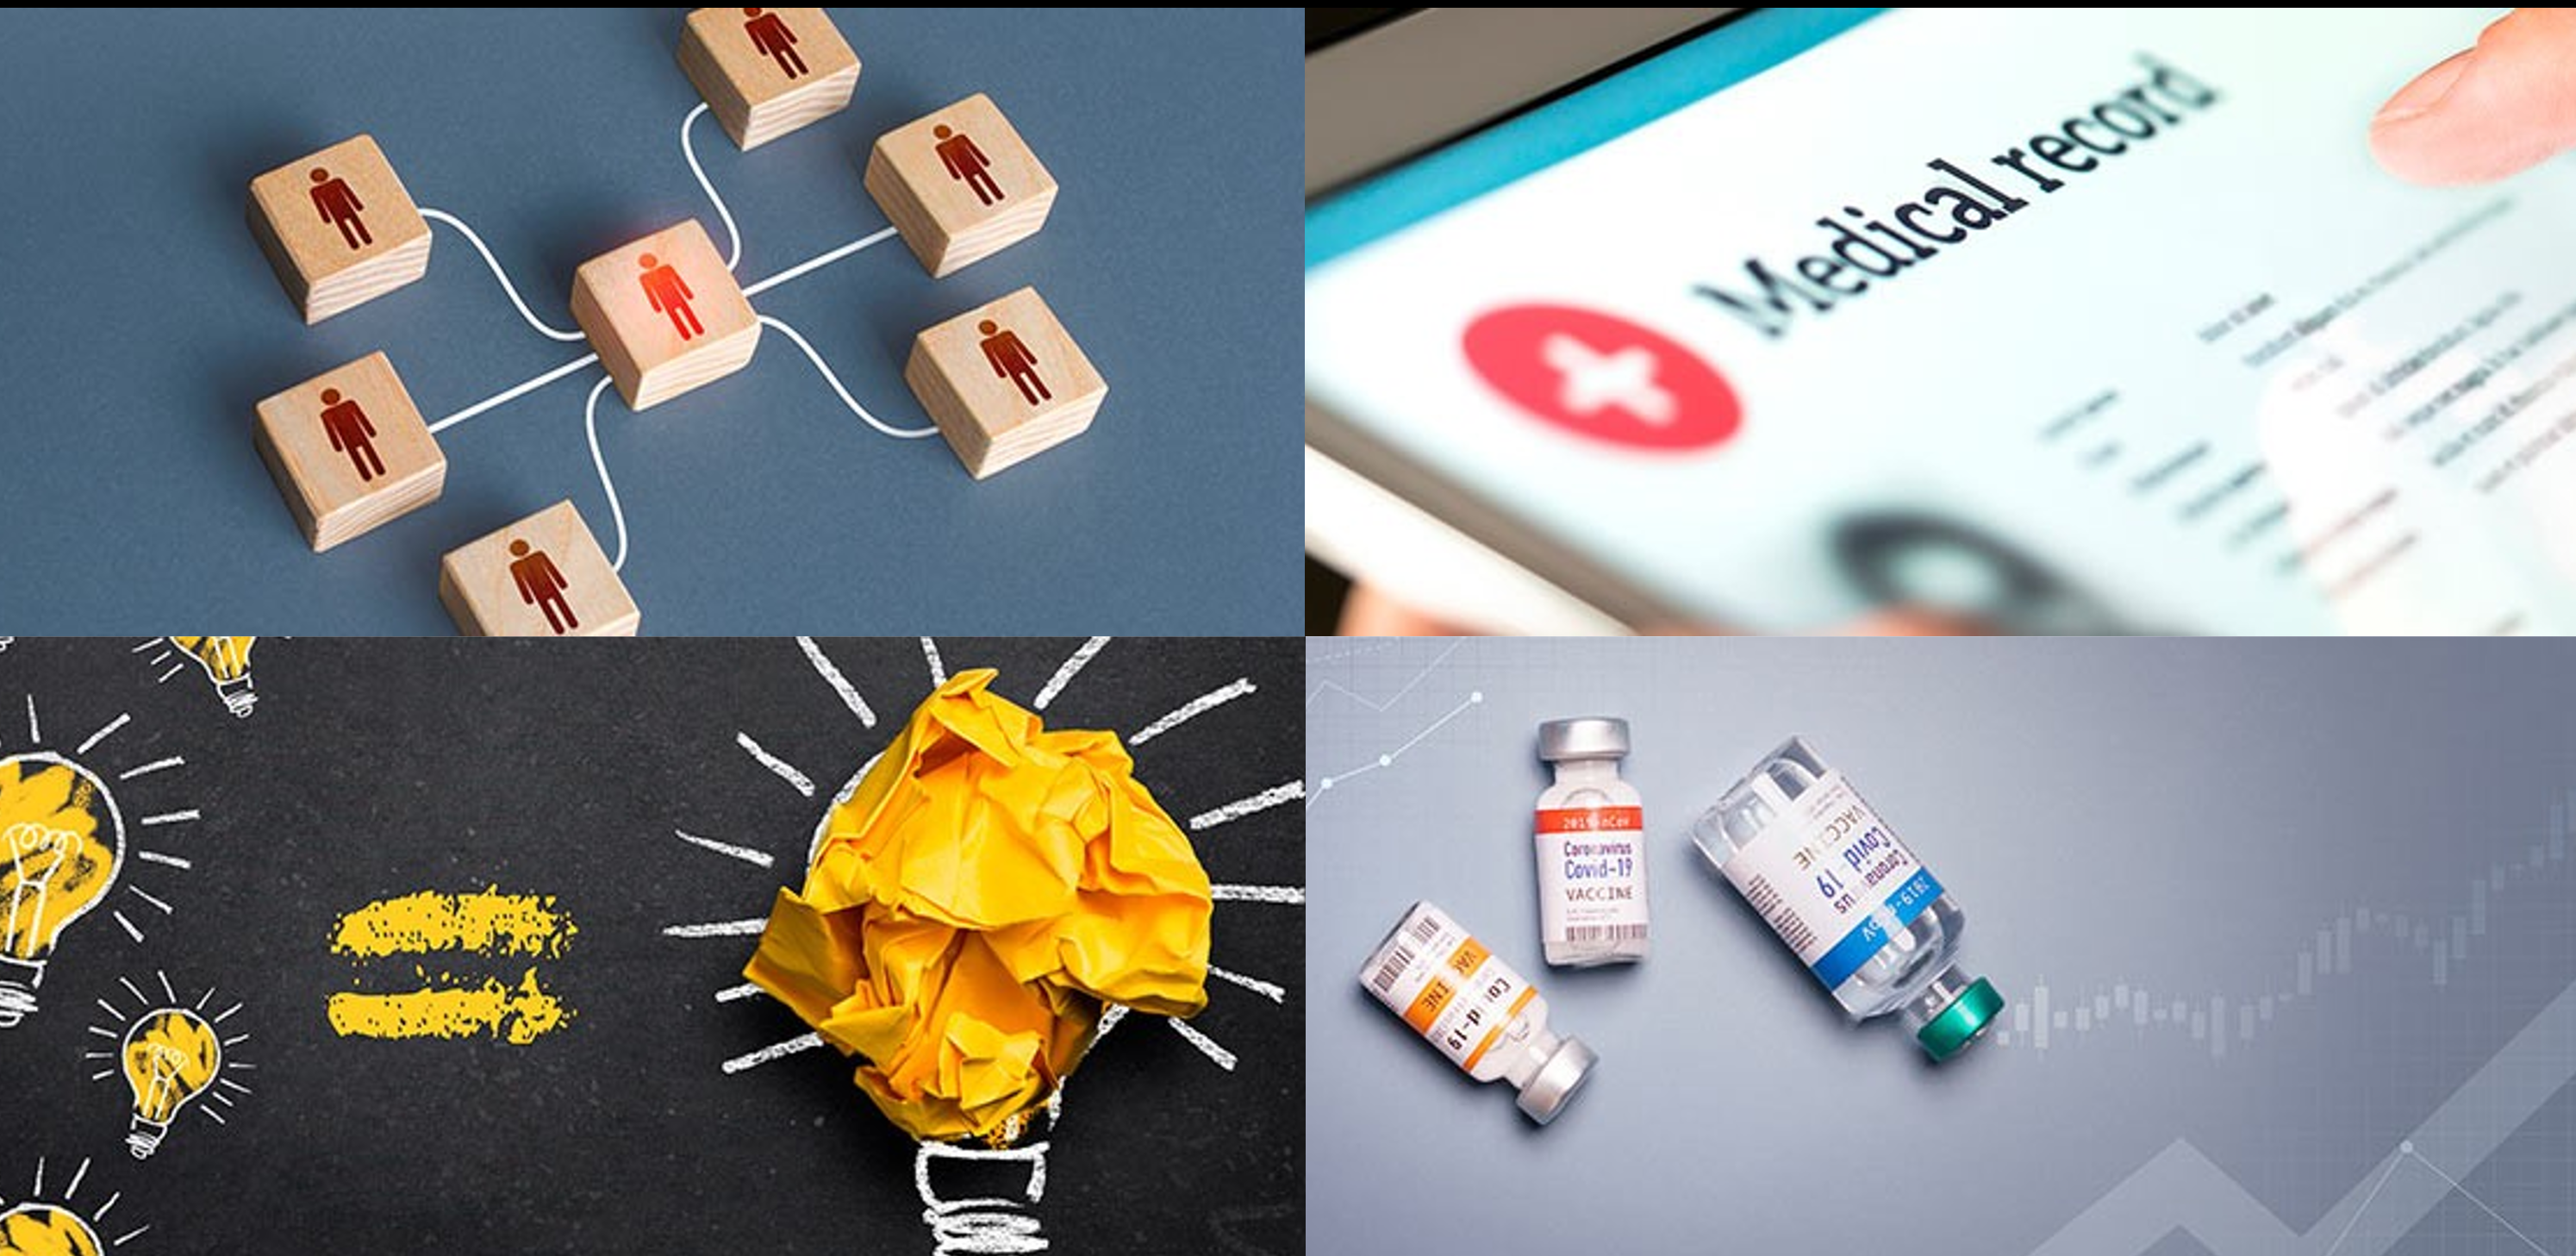 Four images: connected building blocks to represent personalised and person-centred health and care; a tablet screen showing a medical record to represent digitised and digital support of health and care; light bulbs to represent innovative collaborations; vaccine containers to represent Covid recovery and impact on health and care system